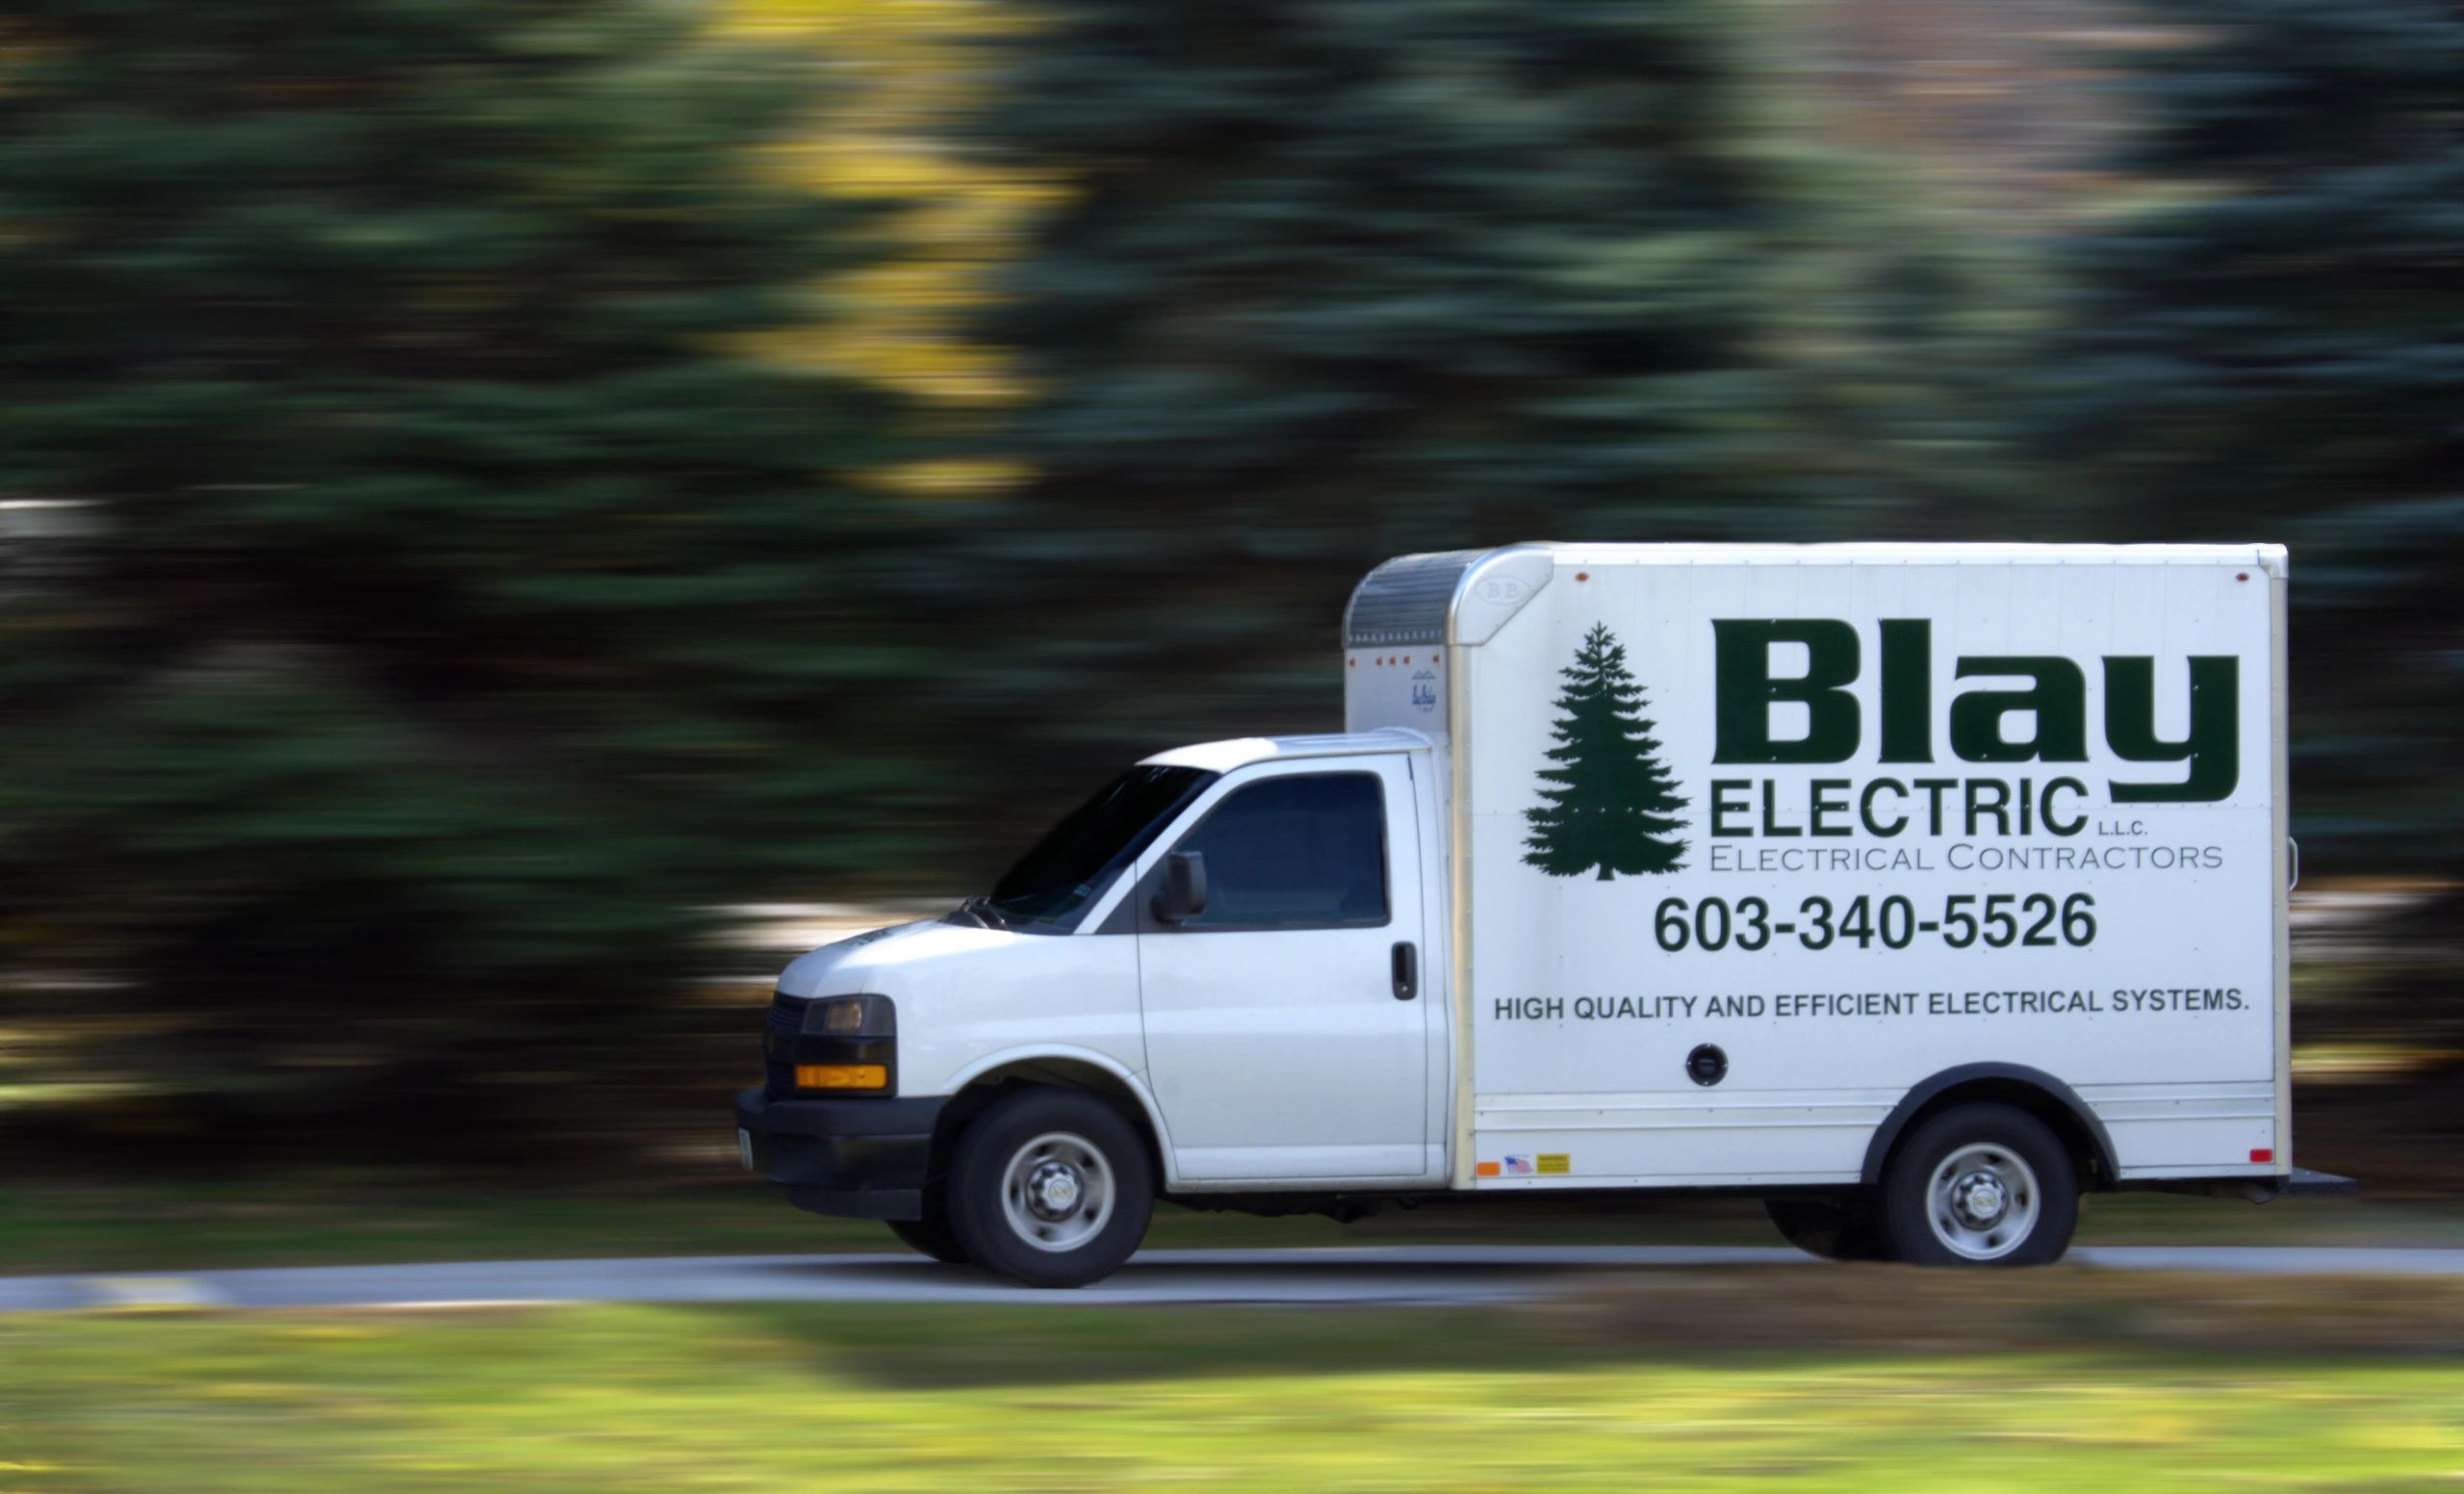 Blay Electric, Electrical Contractors service truck.